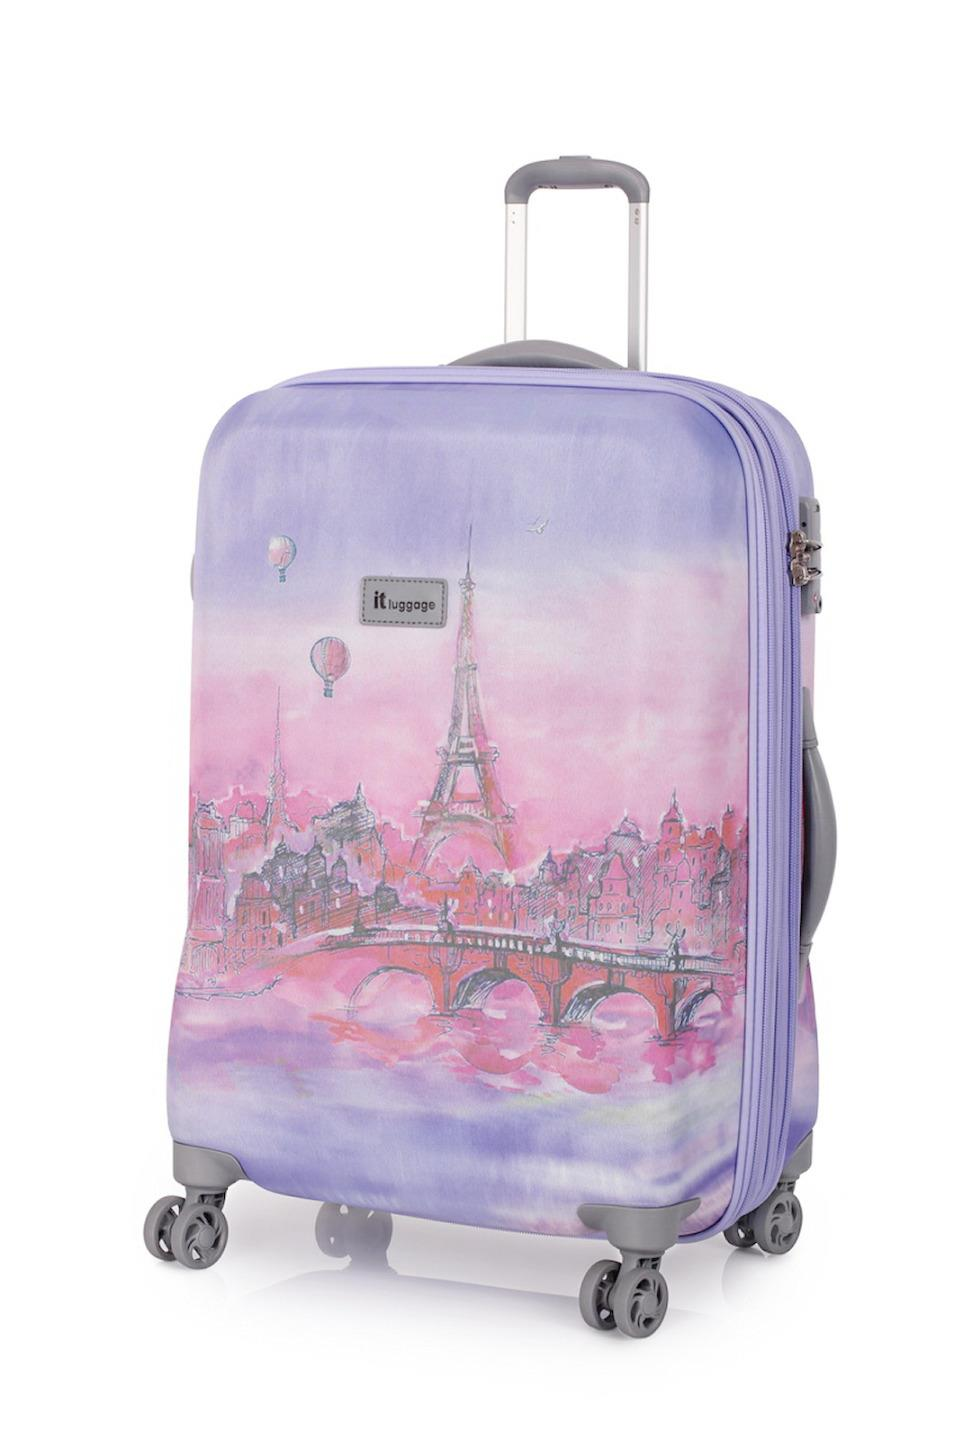 it luggage paris balloons 3 trolley suitcase set travel cabin bag lightweight. Black Bedroom Furniture Sets. Home Design Ideas